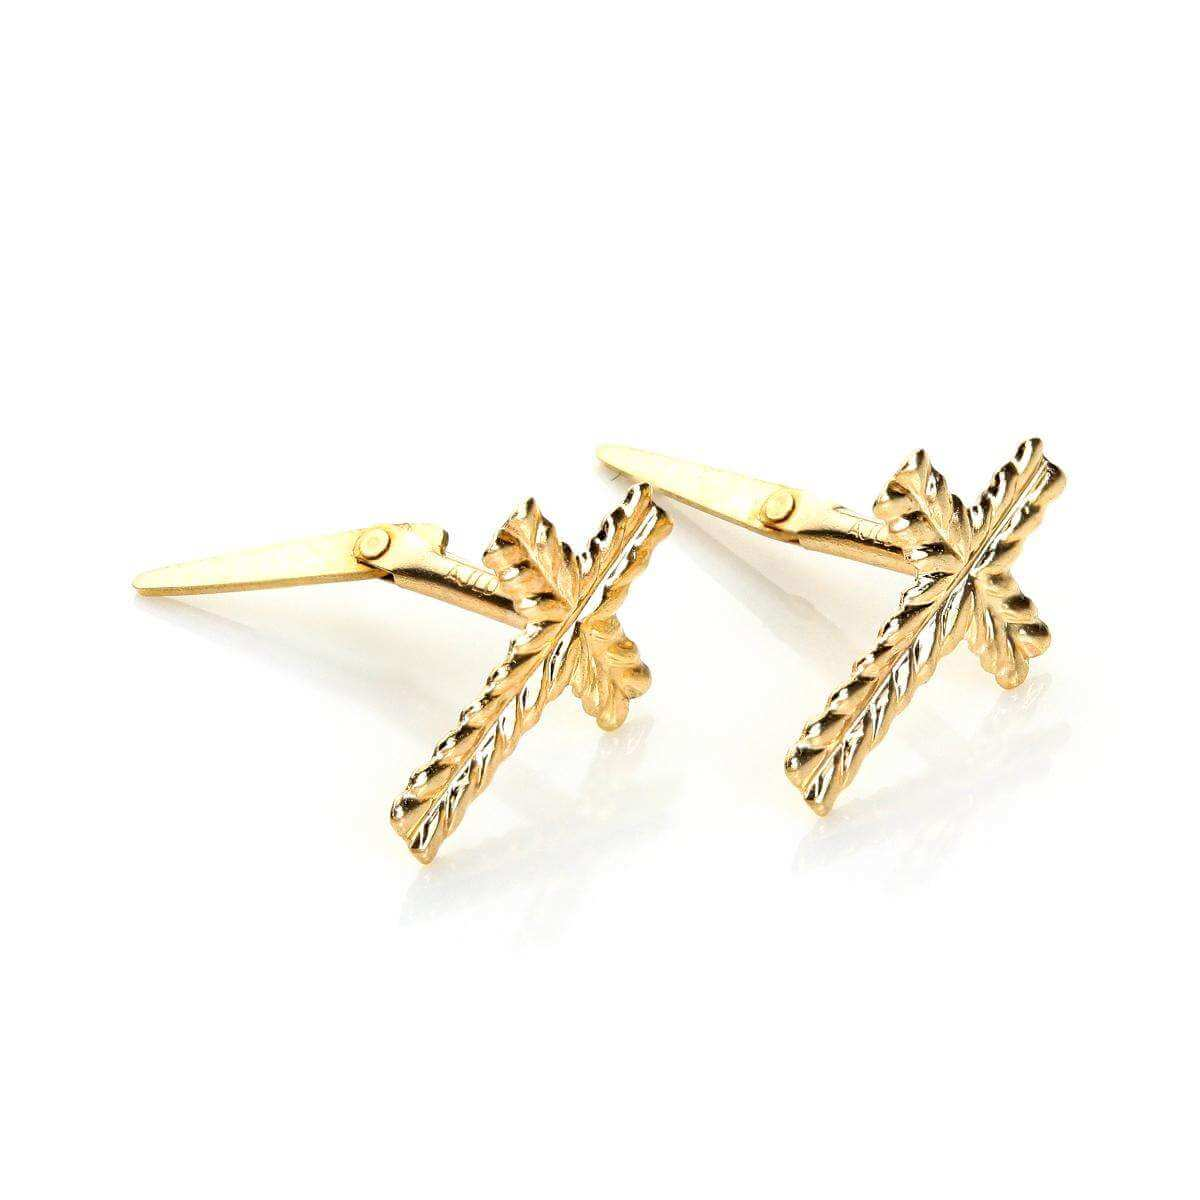 Andralok 9ct Yellow Gold Small Patterned Cross Stud Earrings